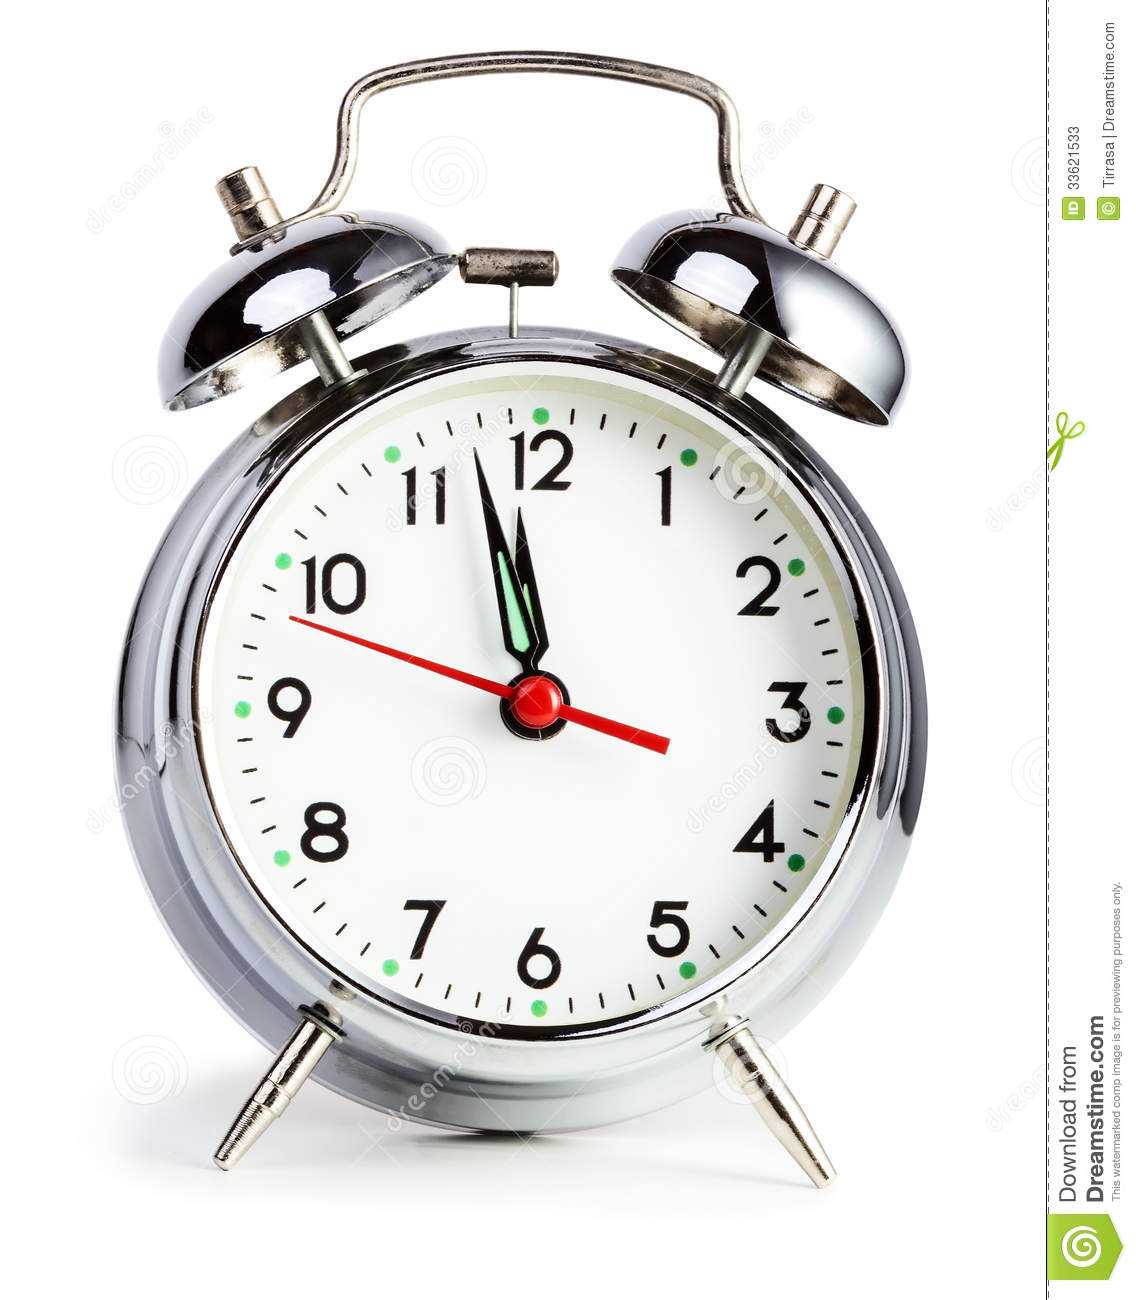 Alarm Clock Stock Photos - Image: 33621533